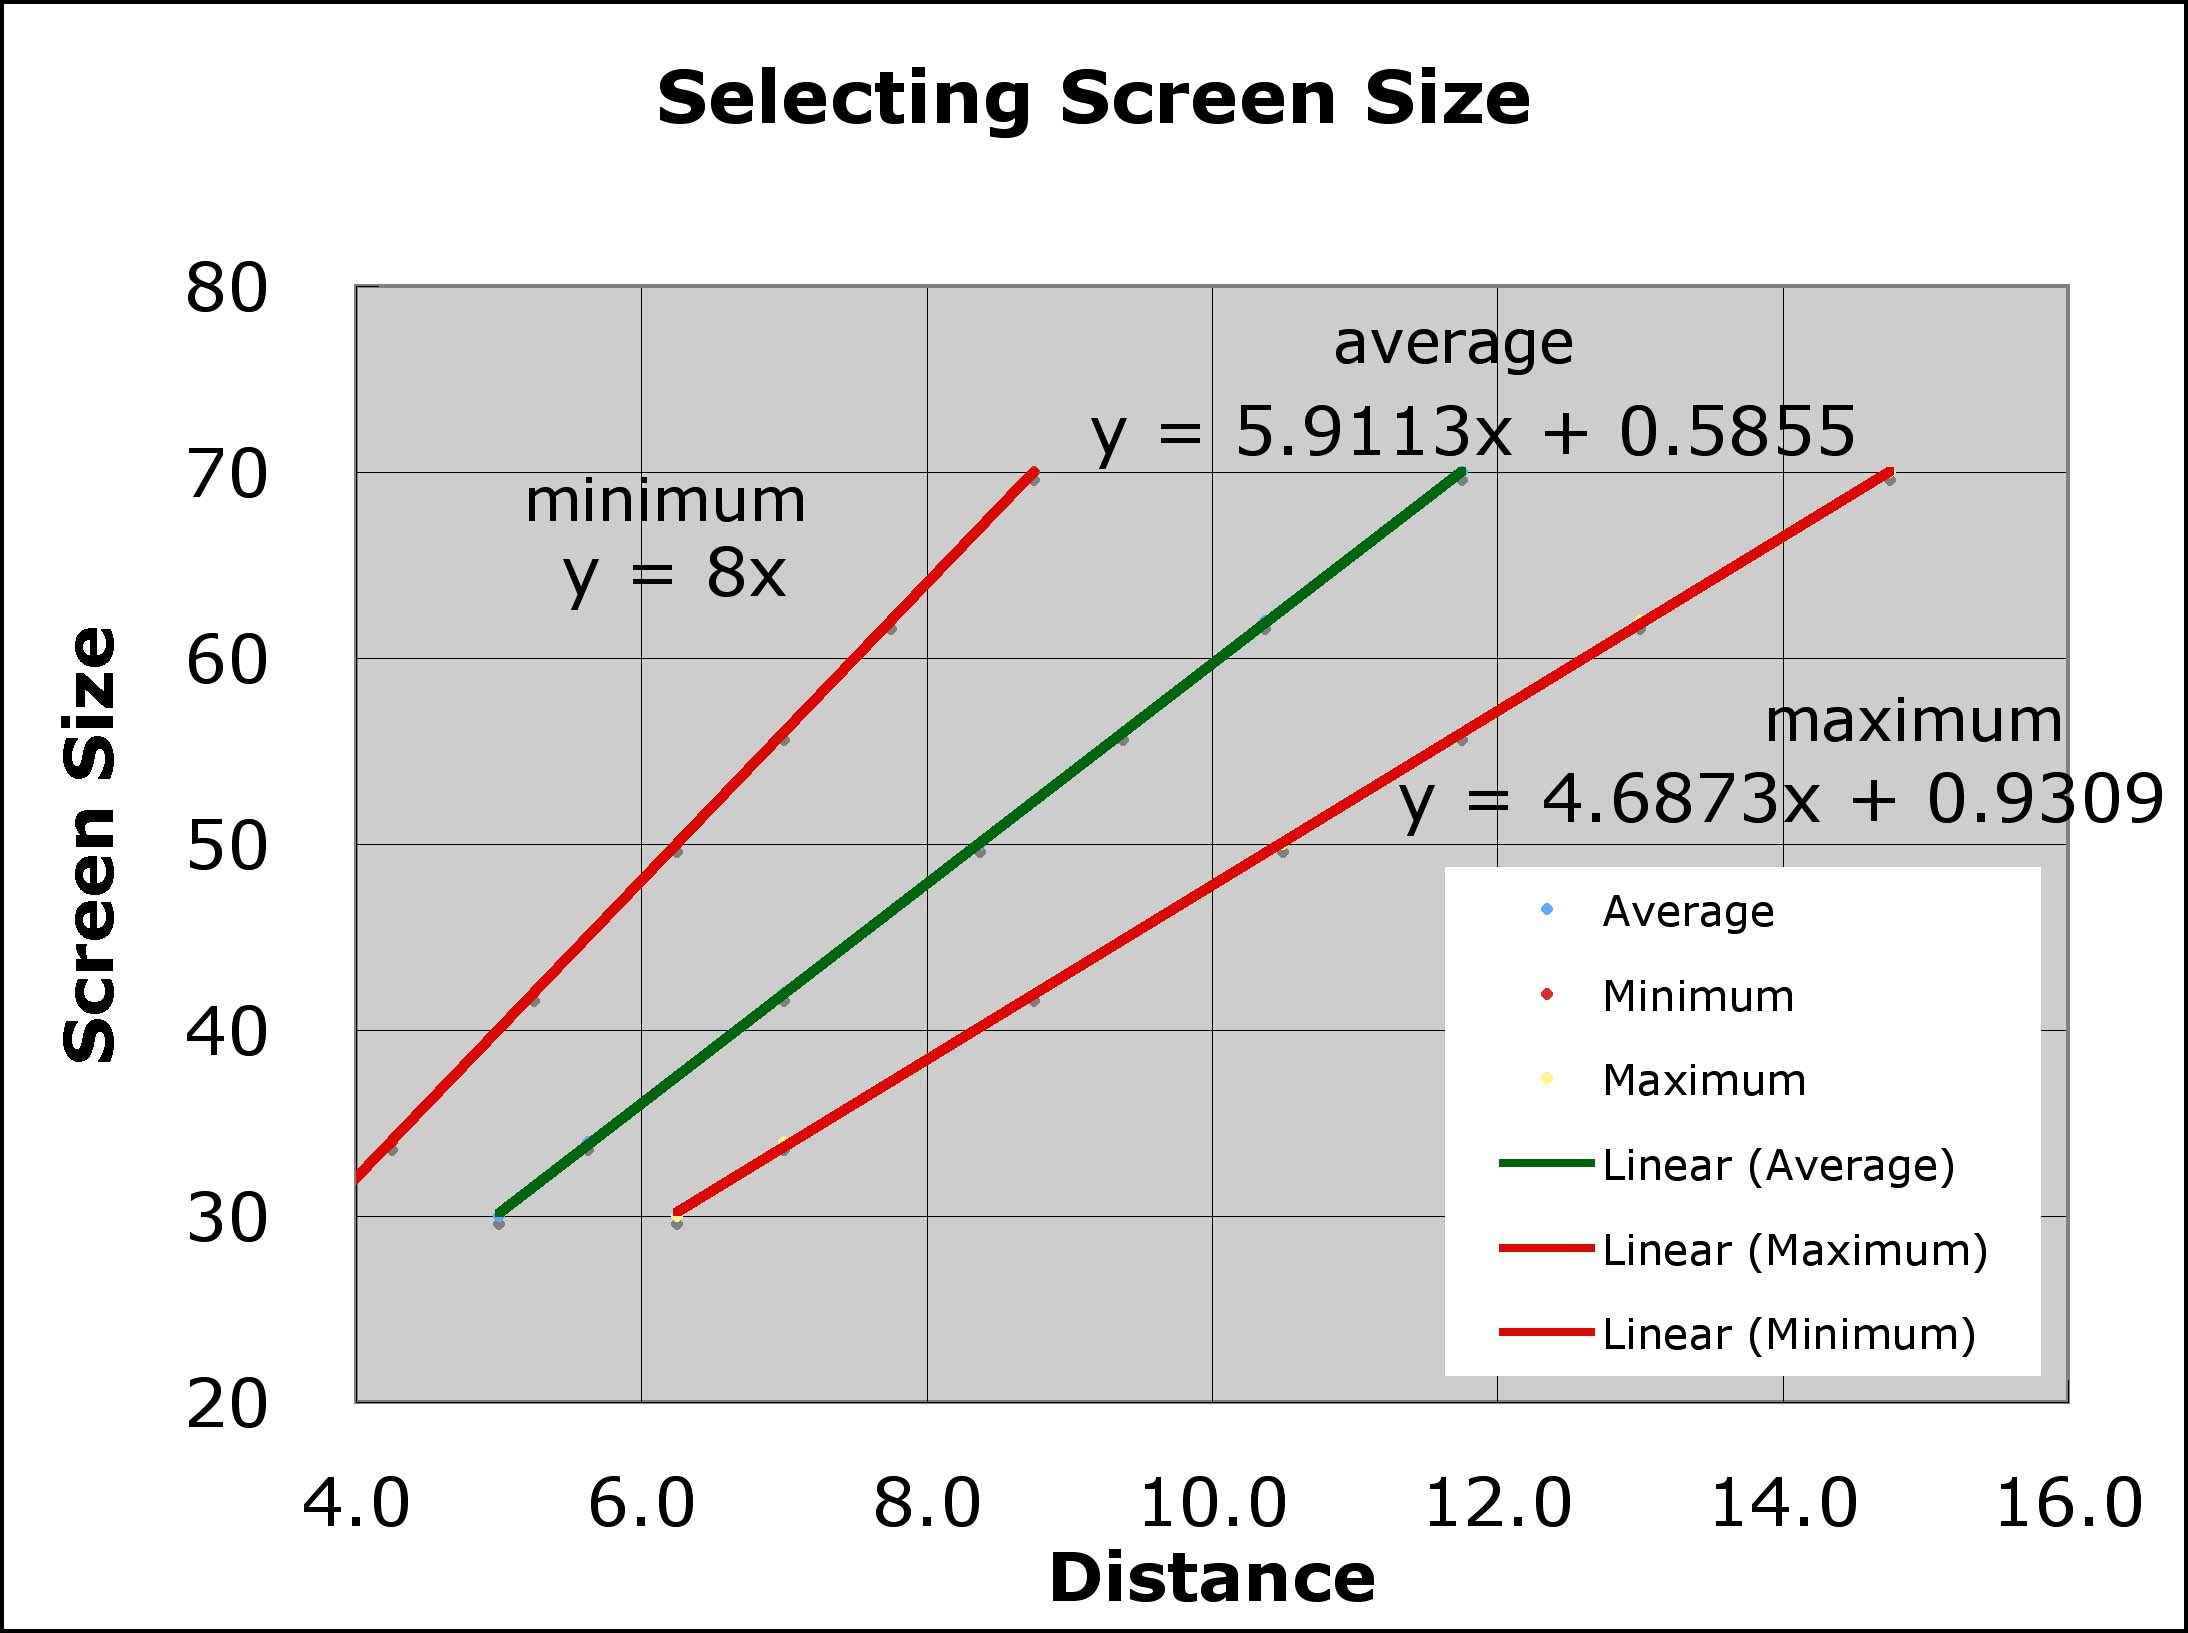 Flat Screen Tv Size Chart Pictures to Pin on Pinterest - PinsDaddy